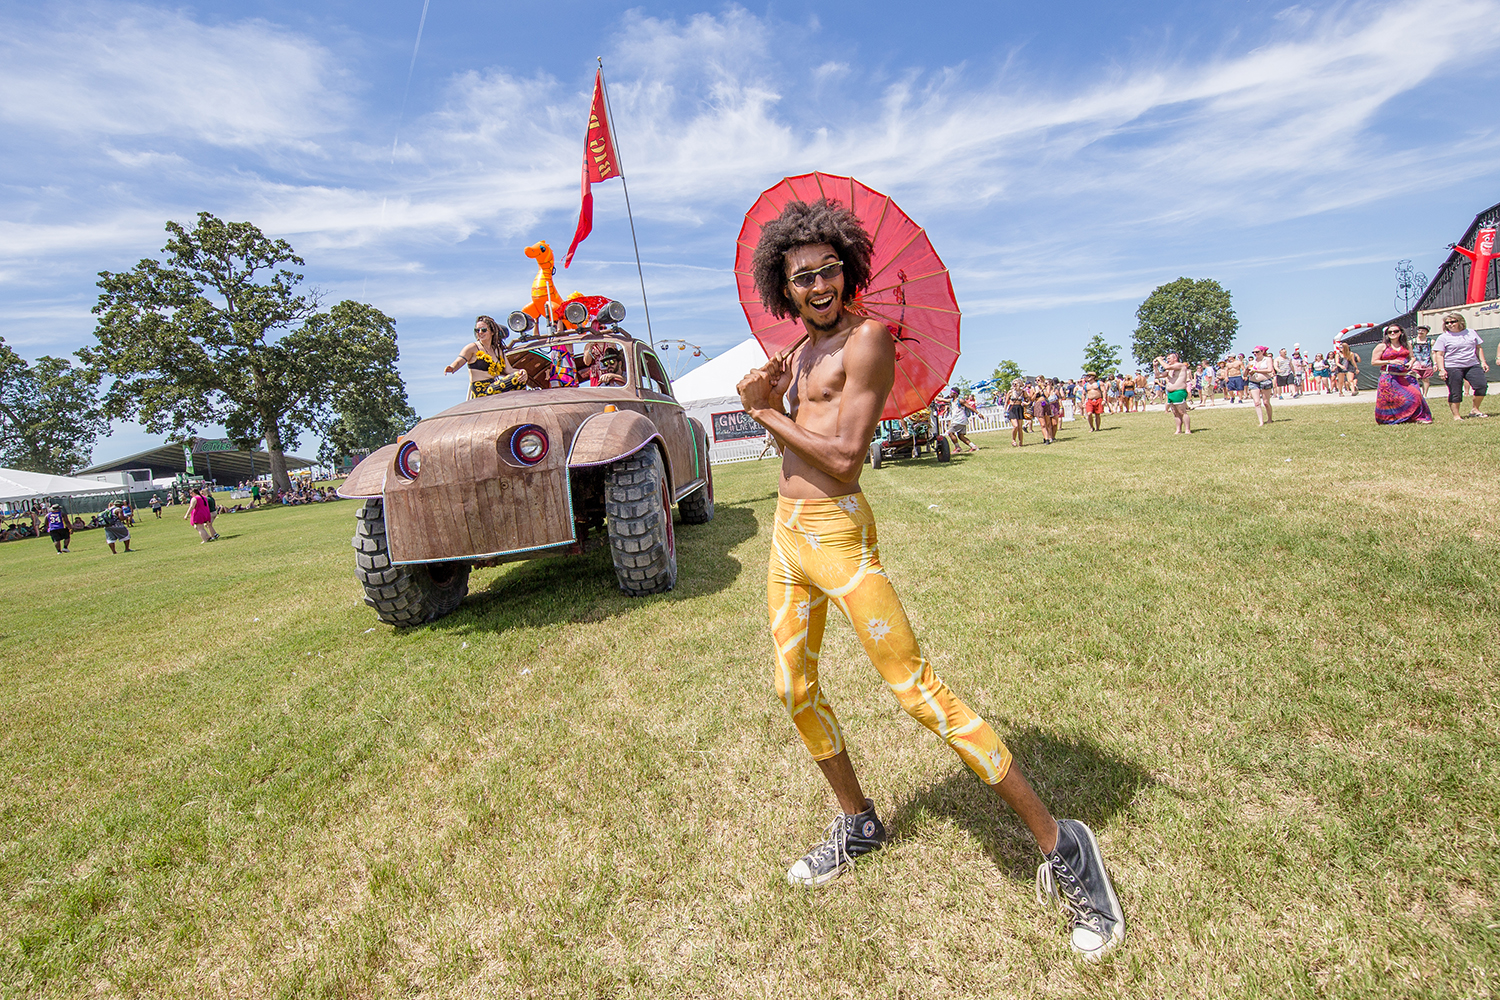 Parades at Bonnaroo